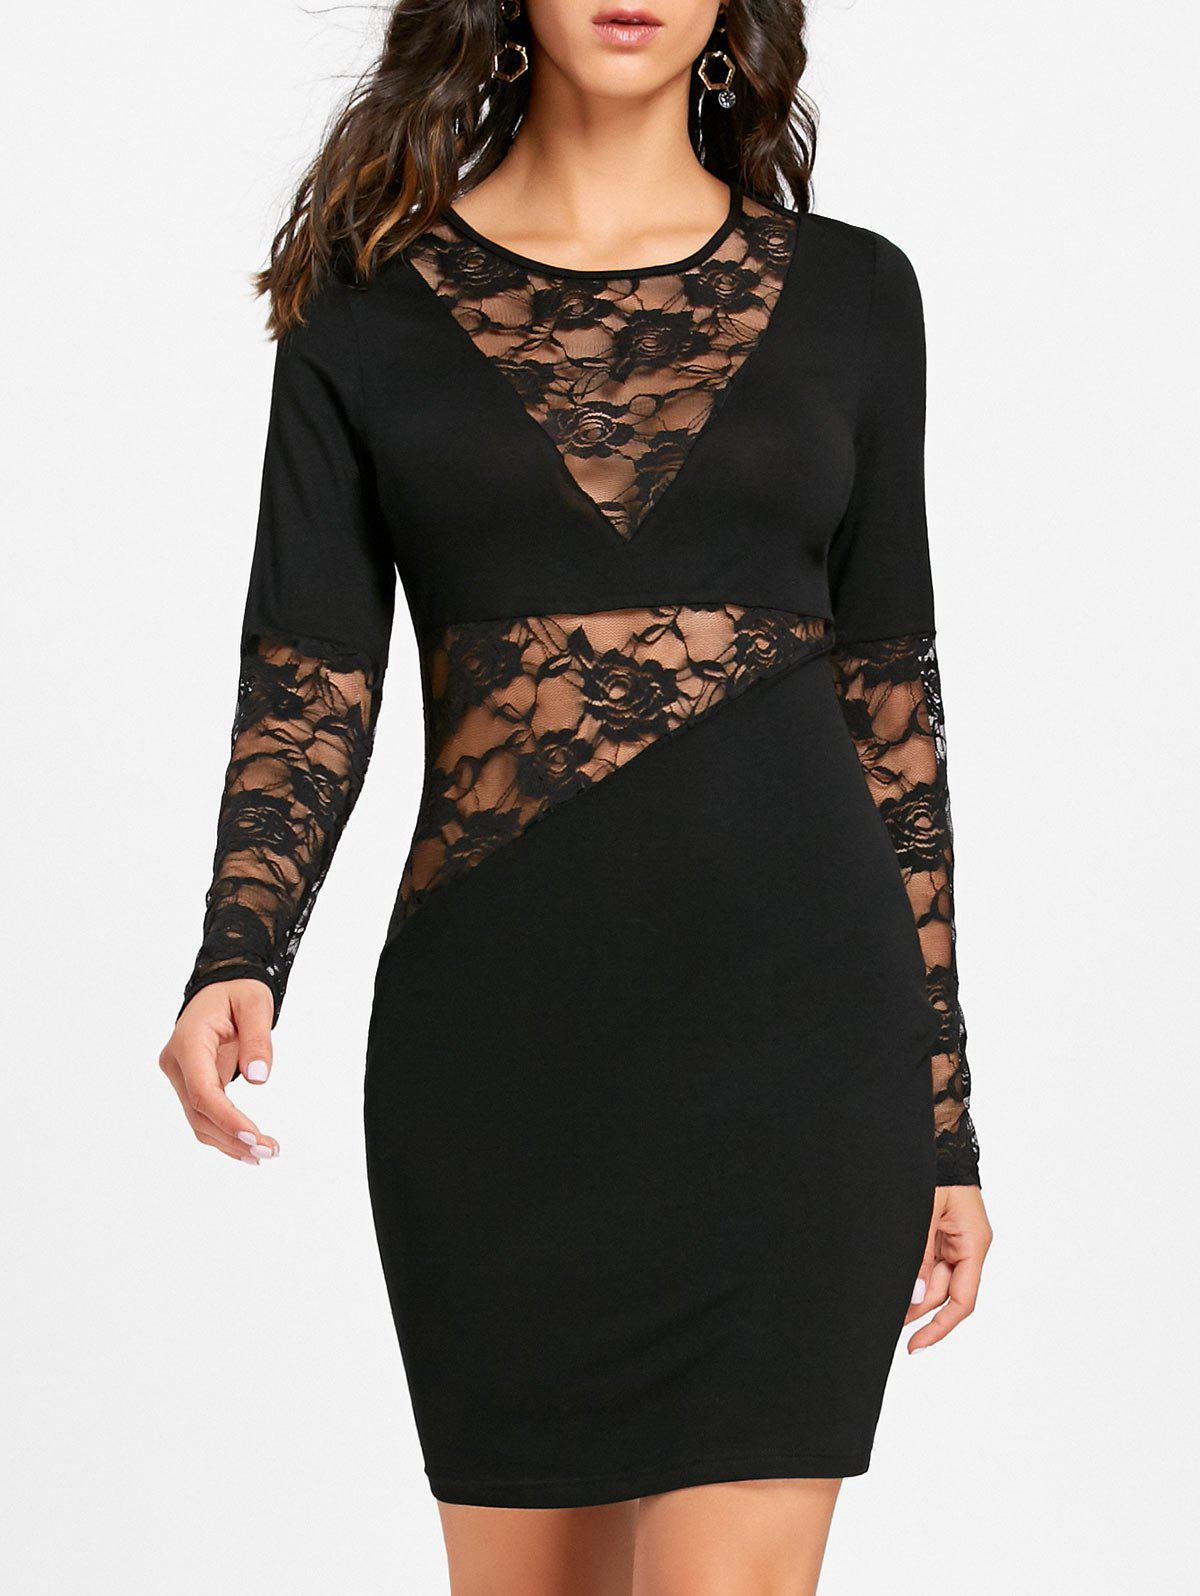 Sheer Lace Insert Long Sleeve Bodycon Dress bell sleeve lace insert mini party dress